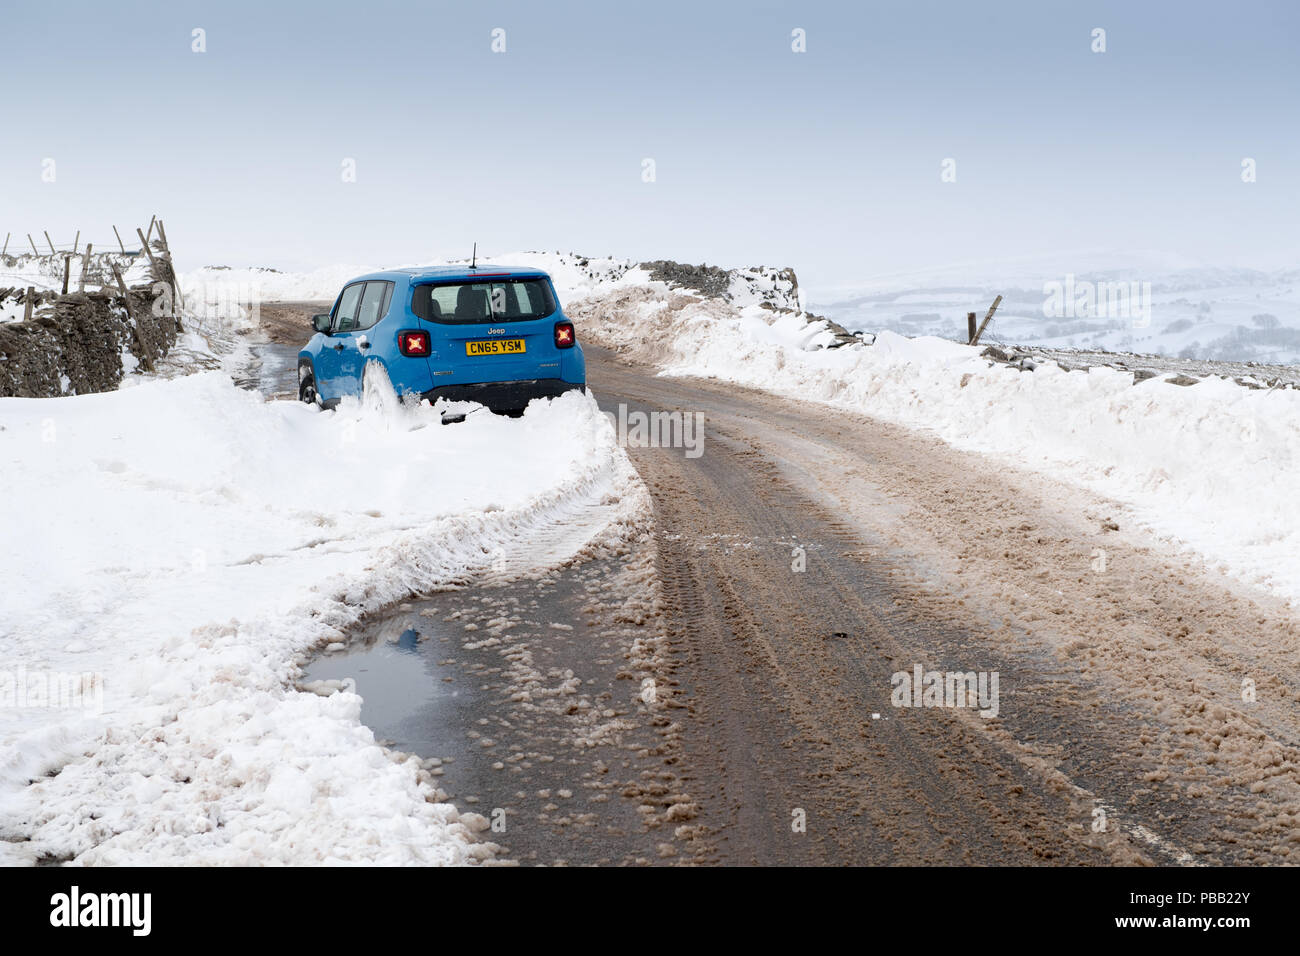 Car abandoned in a snowdrift on a rural road in Cumbria, after a snowstorm. - Stock Image